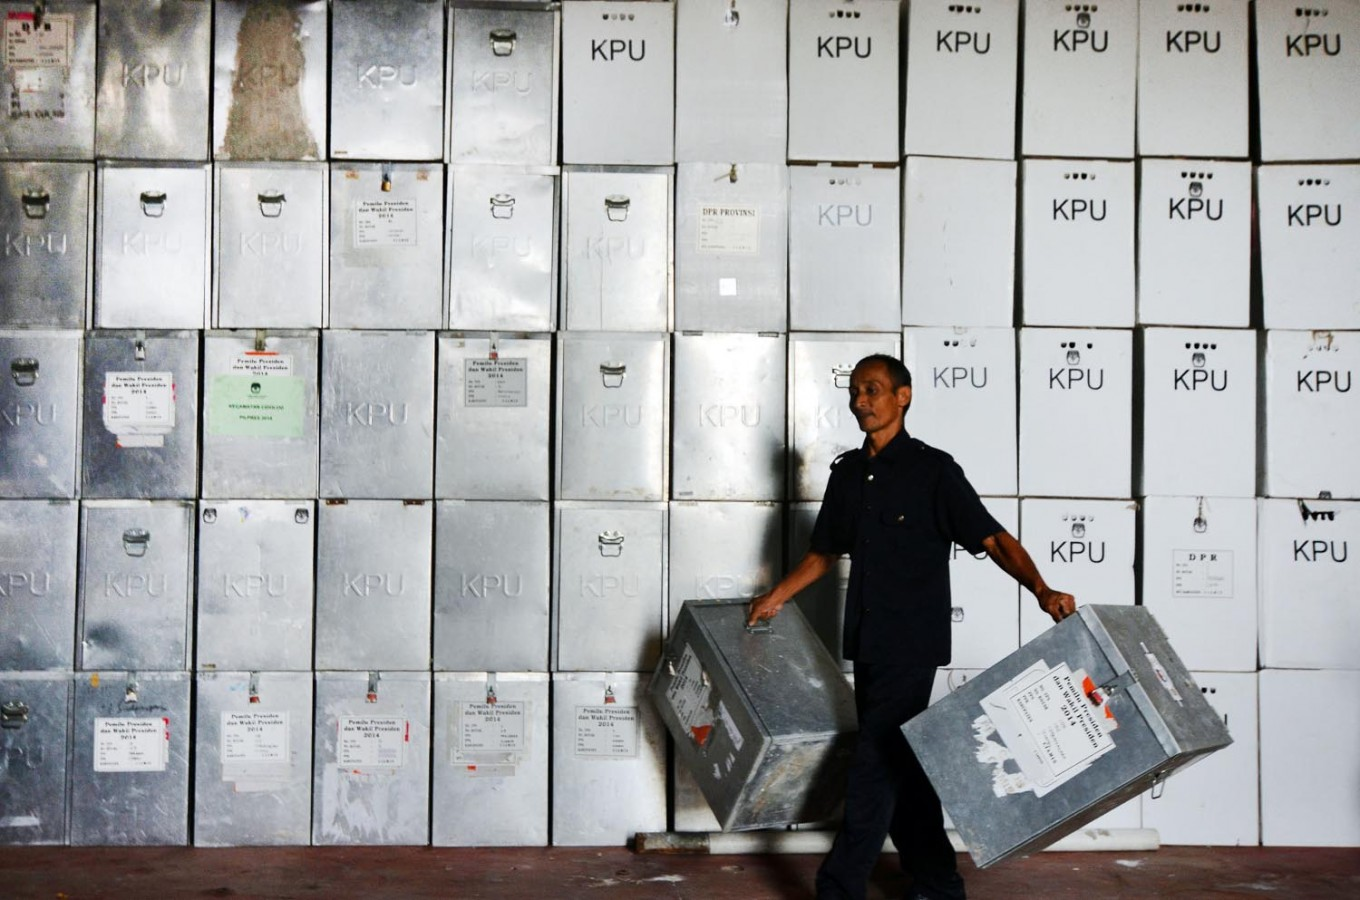 Komnas HAM asks ministry to speed up e-ID registration ahead of elections